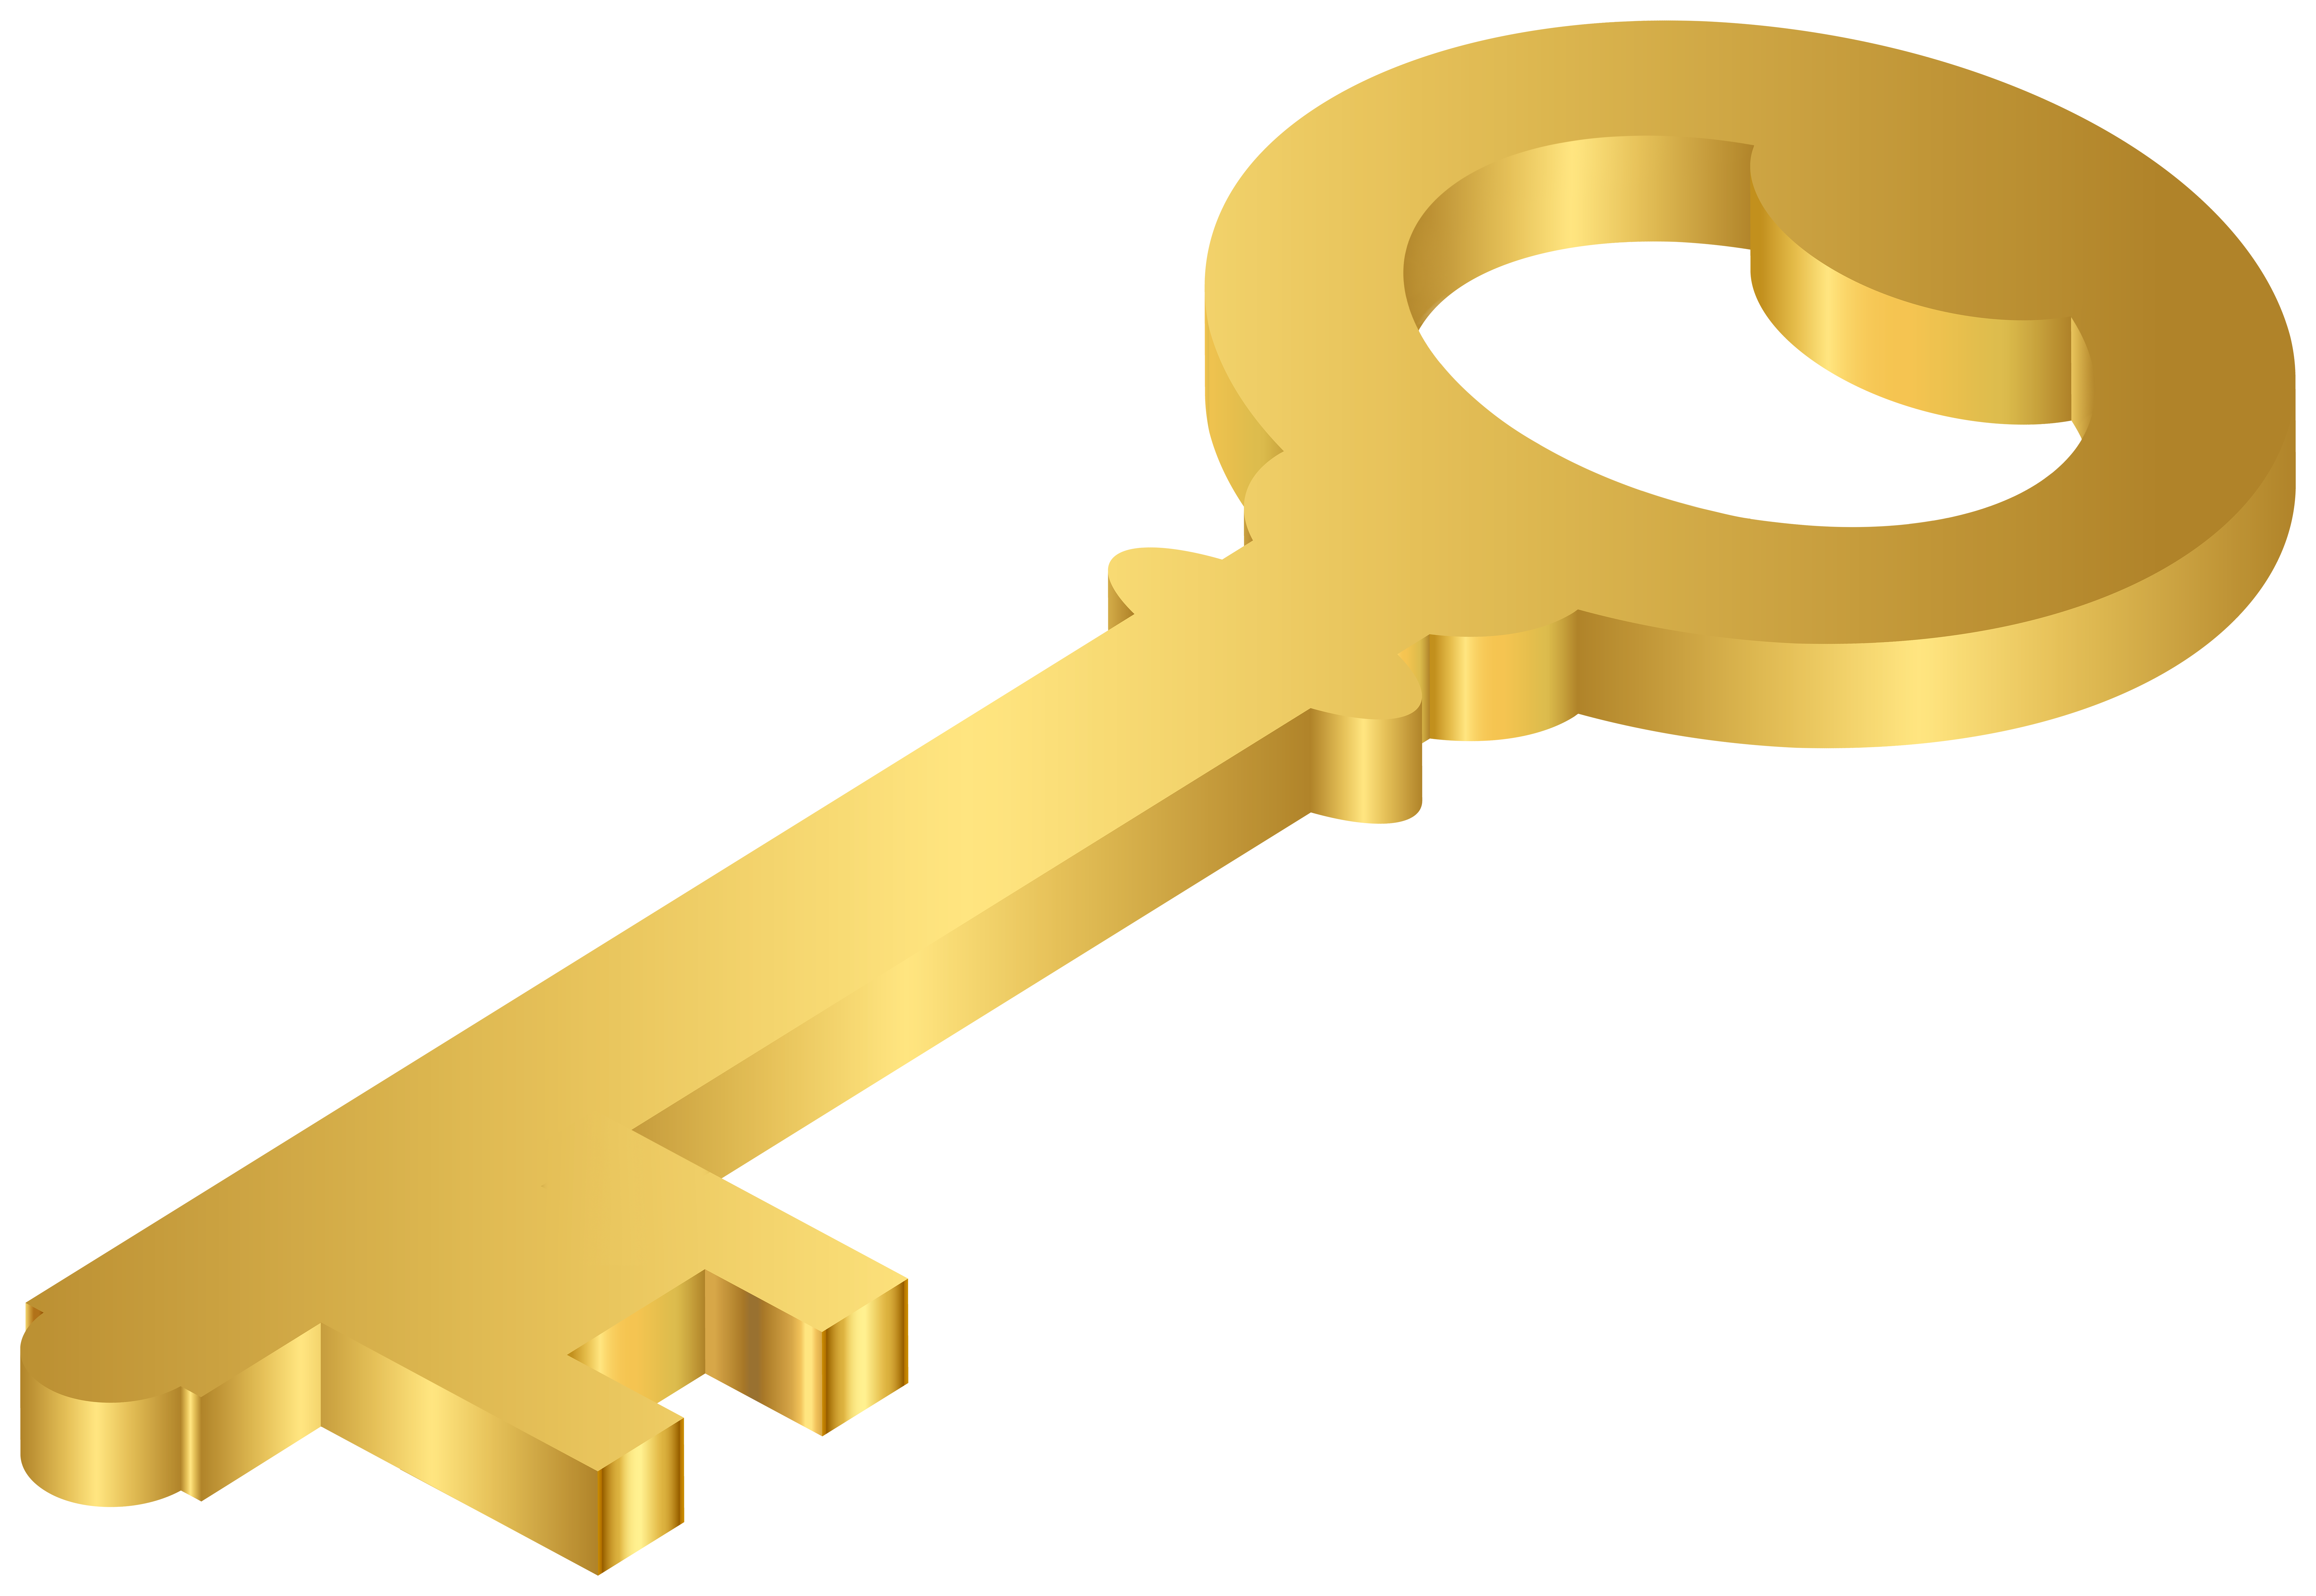 gold keyhole clipart - HD8000×5514